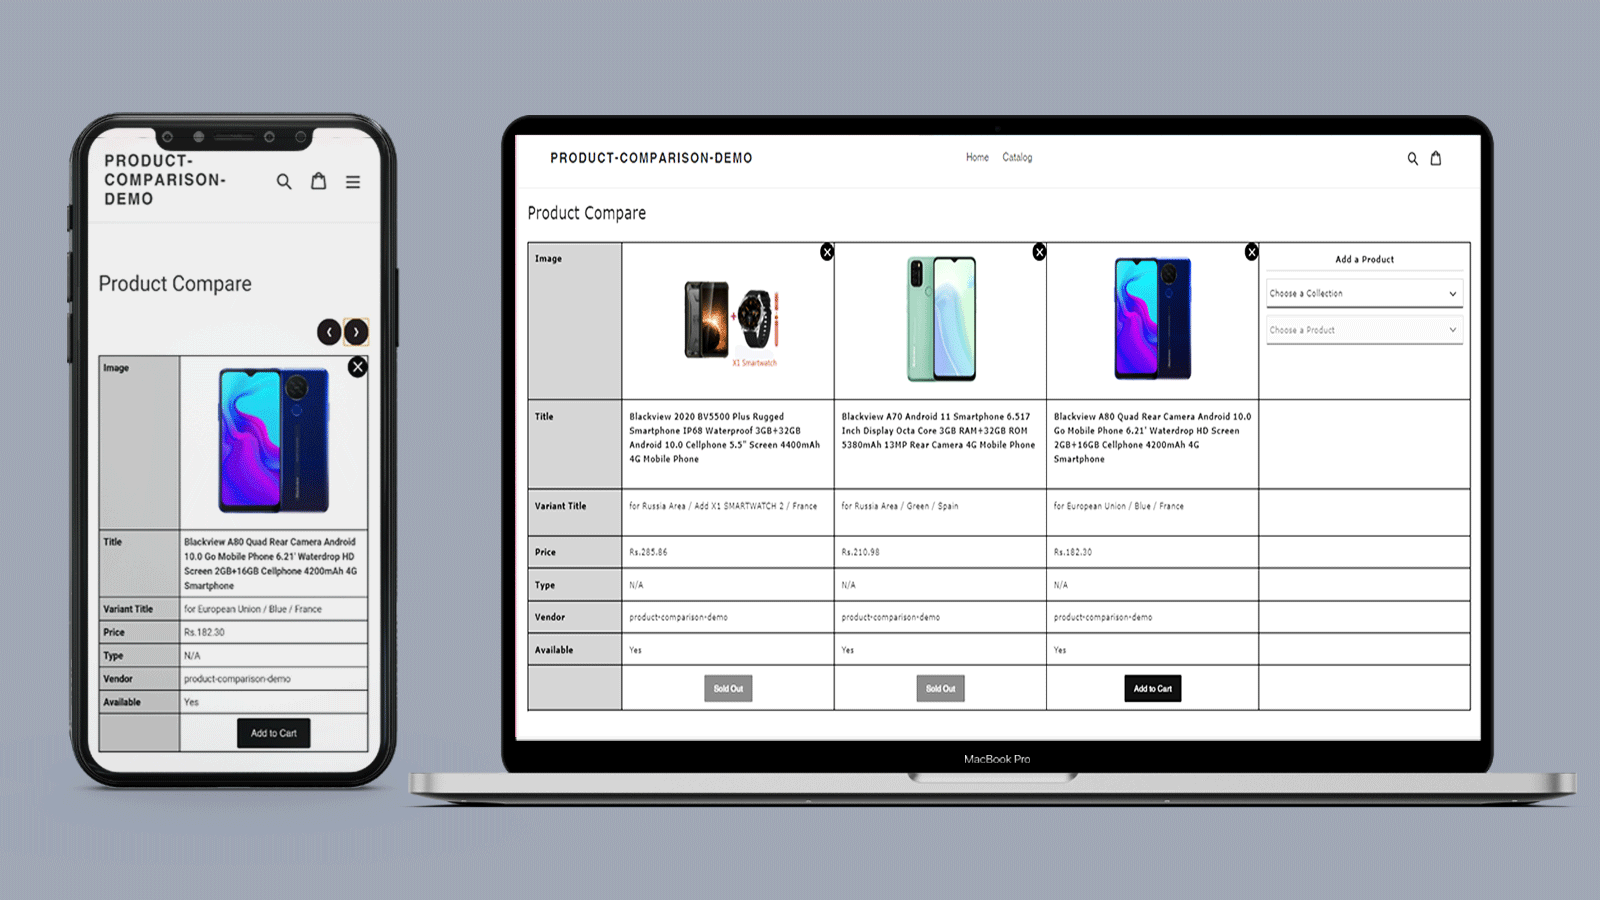 Product Compare page